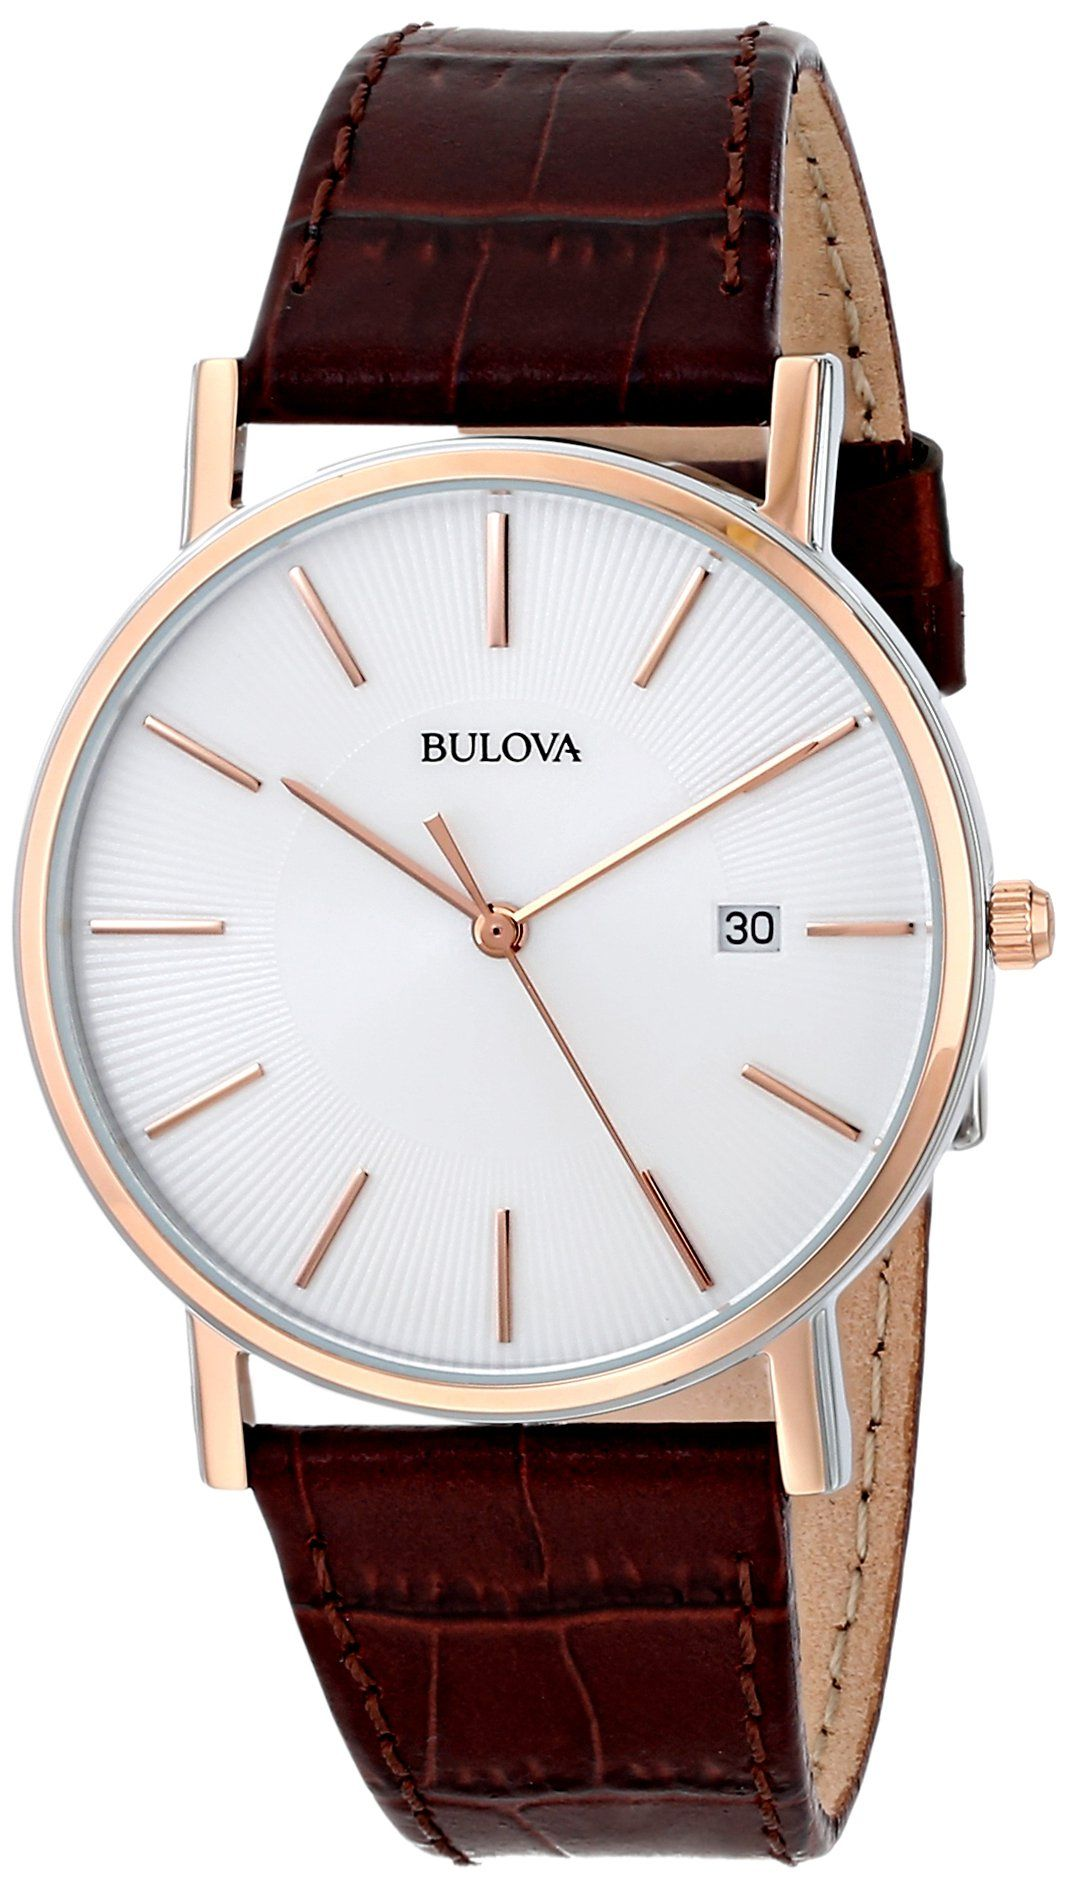 e52e28d5bb9 Amazon.com  Bulova Men s 98H51 Leather Dress Watch  Bulova  Clothing ...